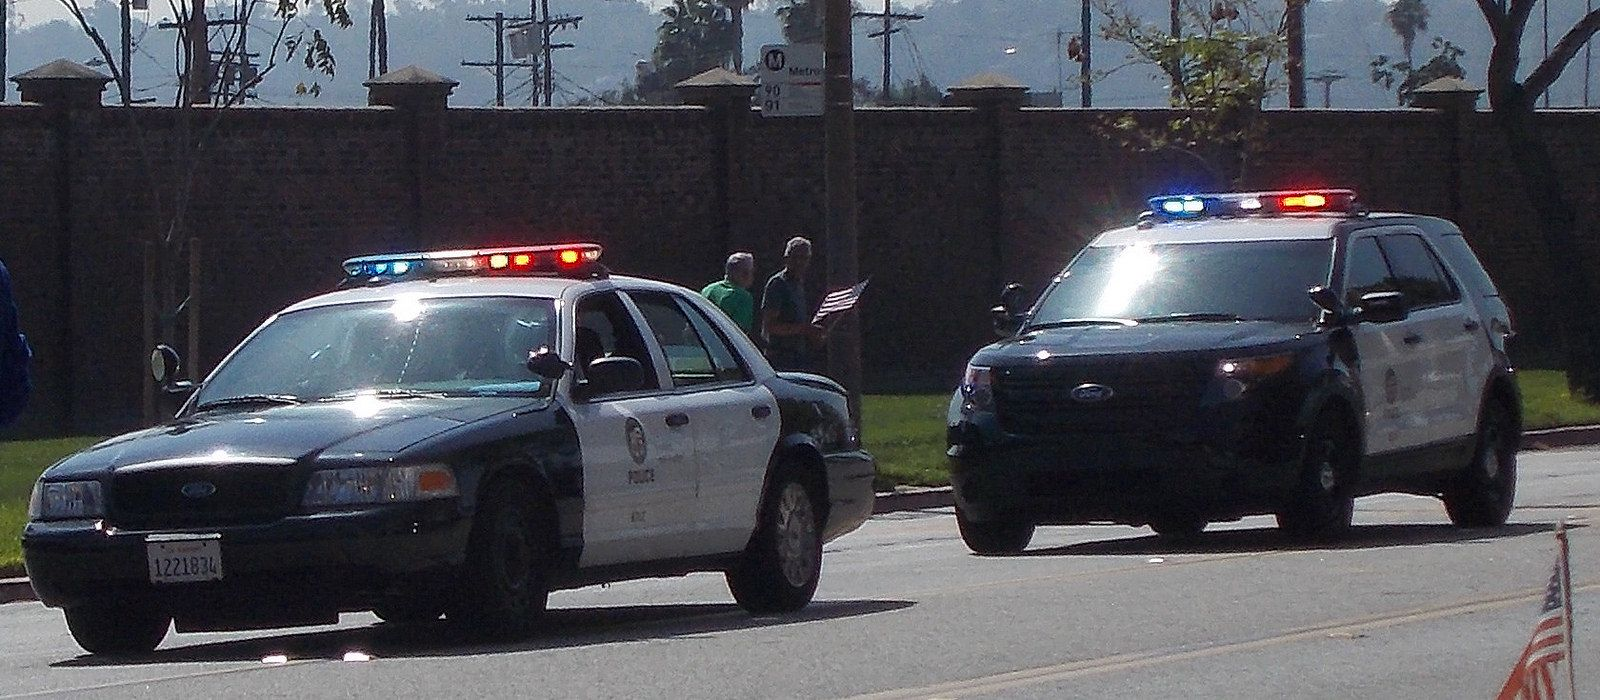 Https Flic Kr P Oyqwaa Los Angeles City Pd Ca 5 Police Cars Emergency Vehicles Los Angeles City